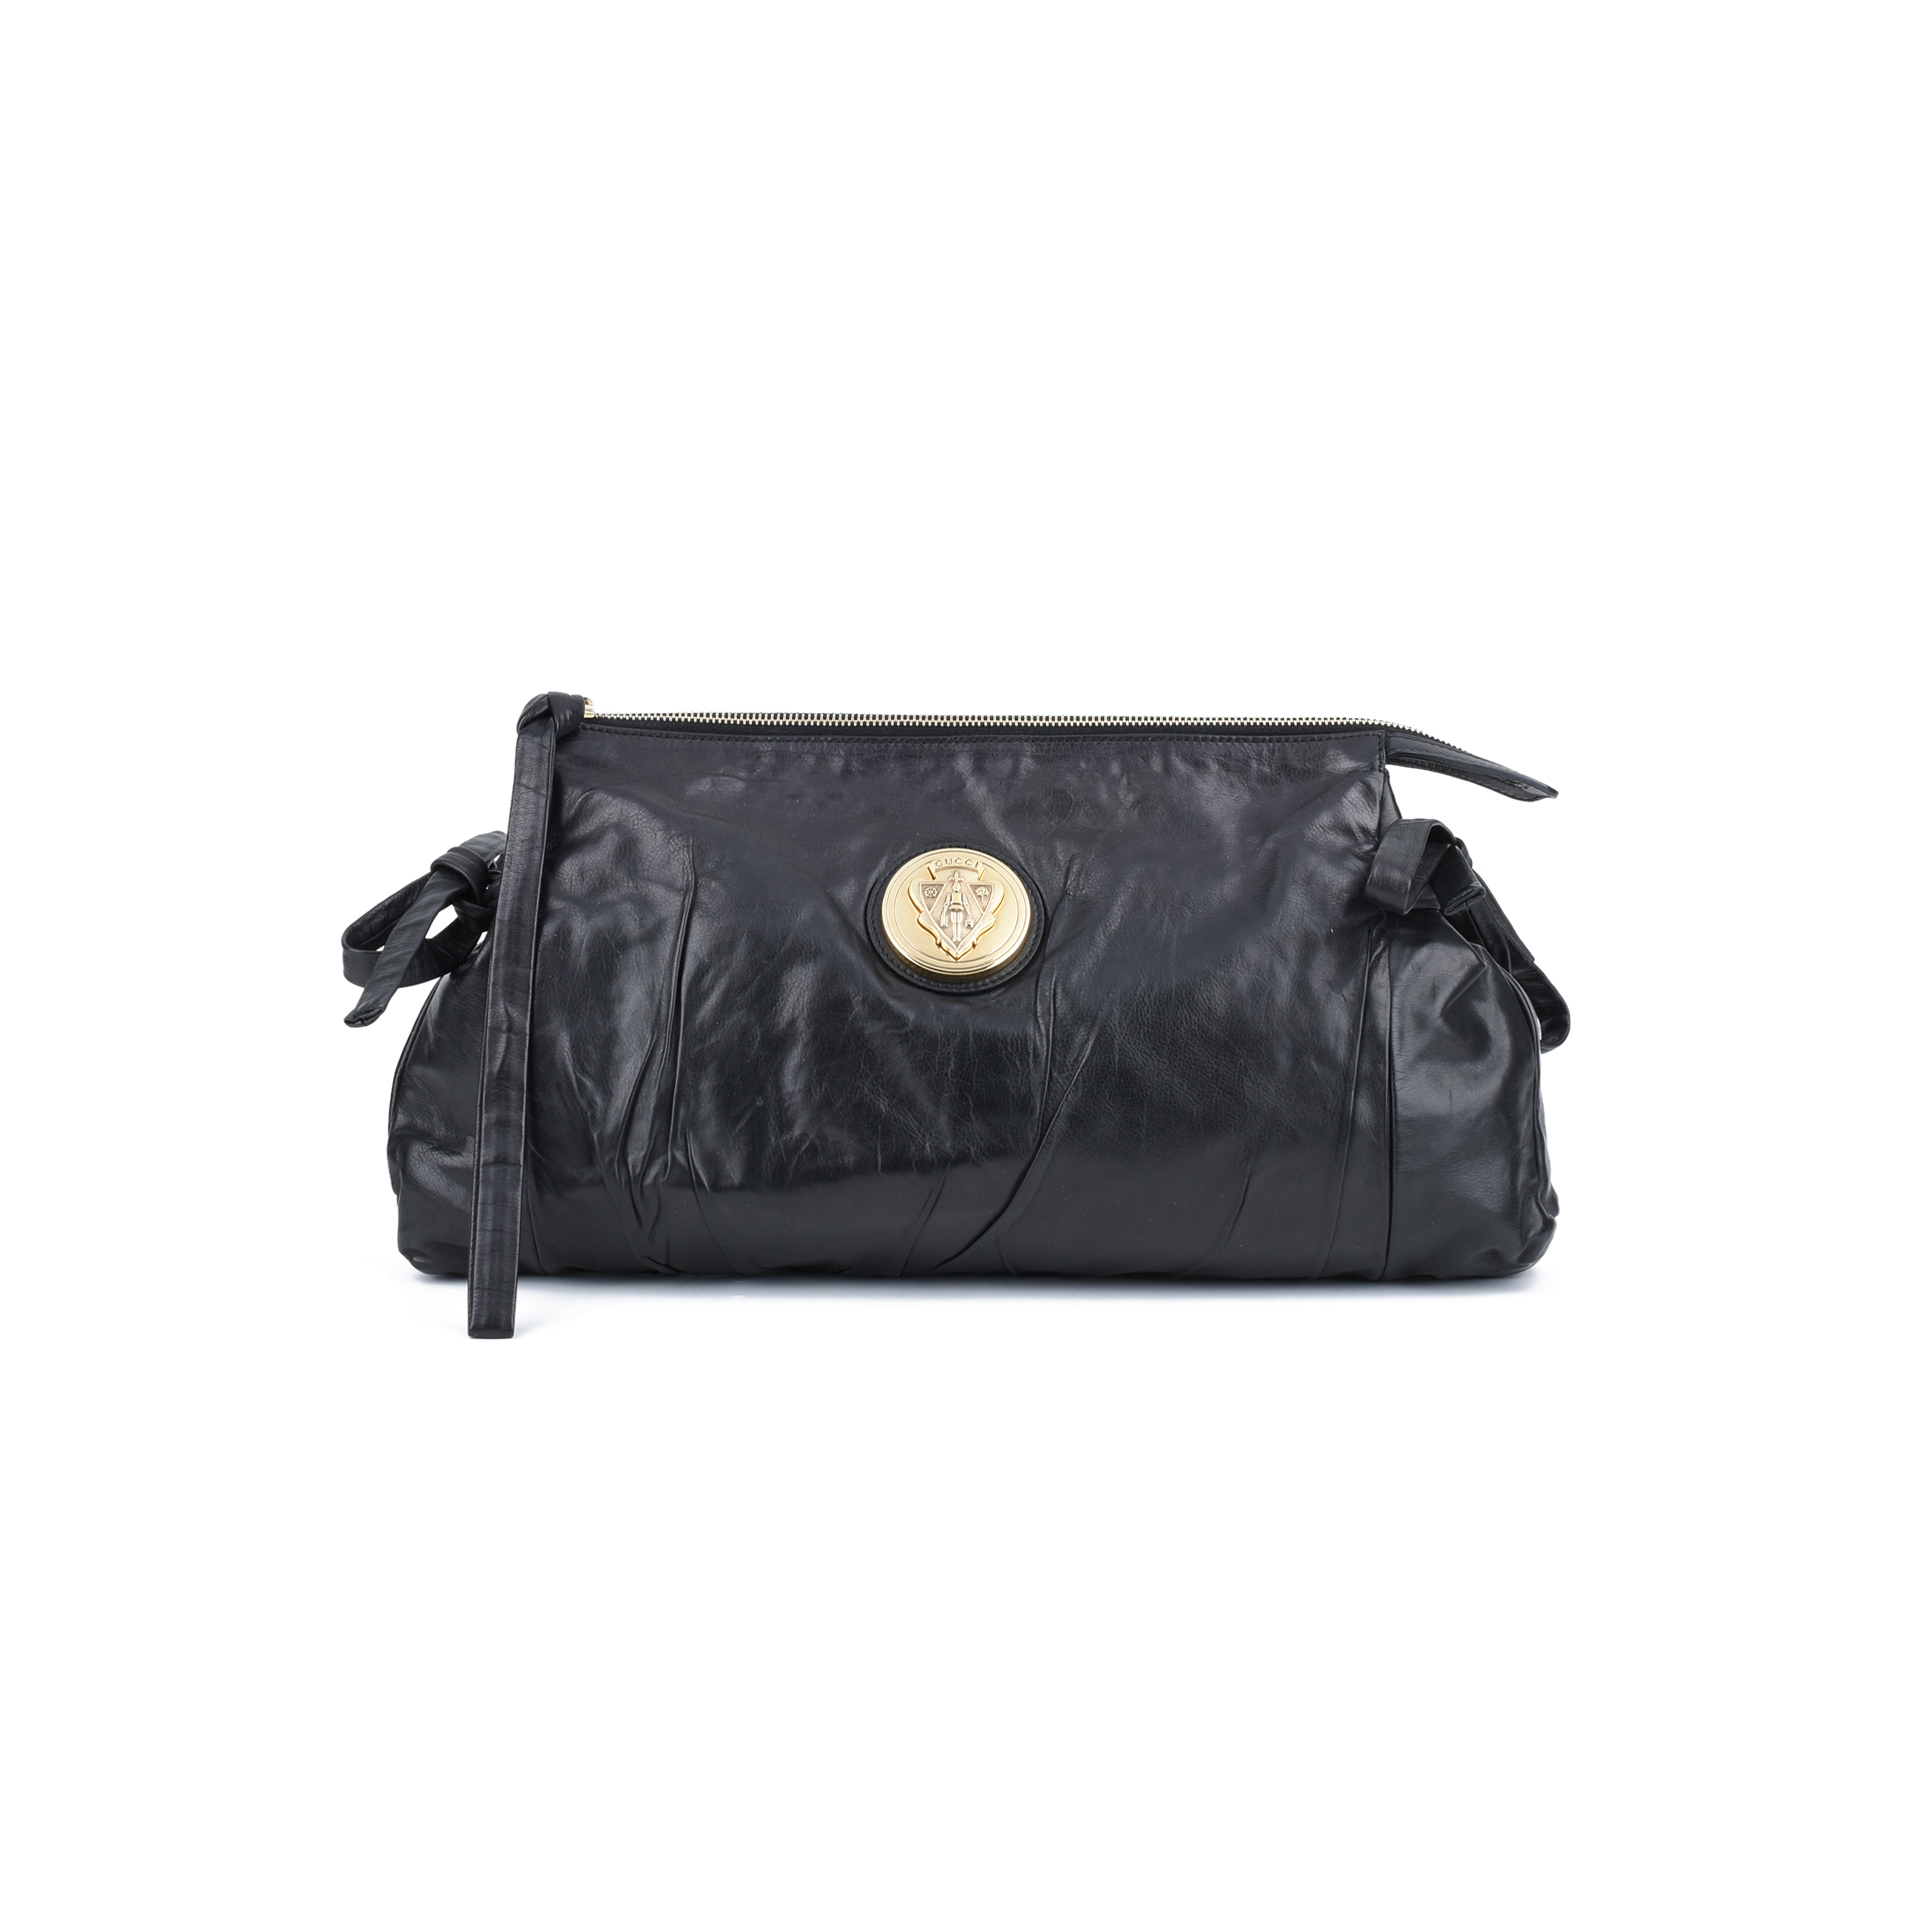 9cacdd290ed Authentic Second Hand Gucci Hysteria Clutch Bag (PSS-420-00011 ...